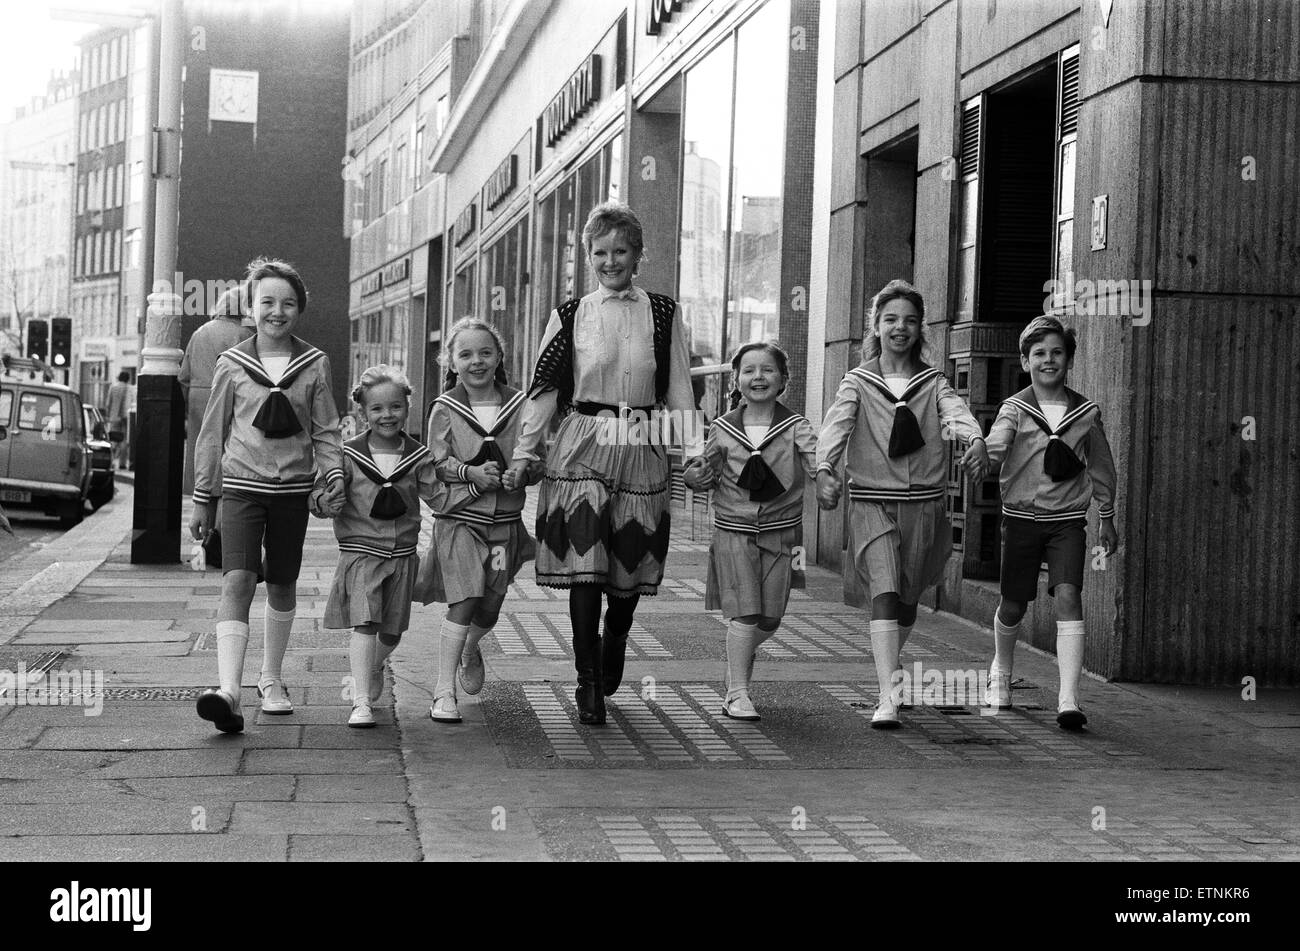 Petula Clark with one of the groups of six children in costume who will be in 'The Sound of Music' at the - Stock Image